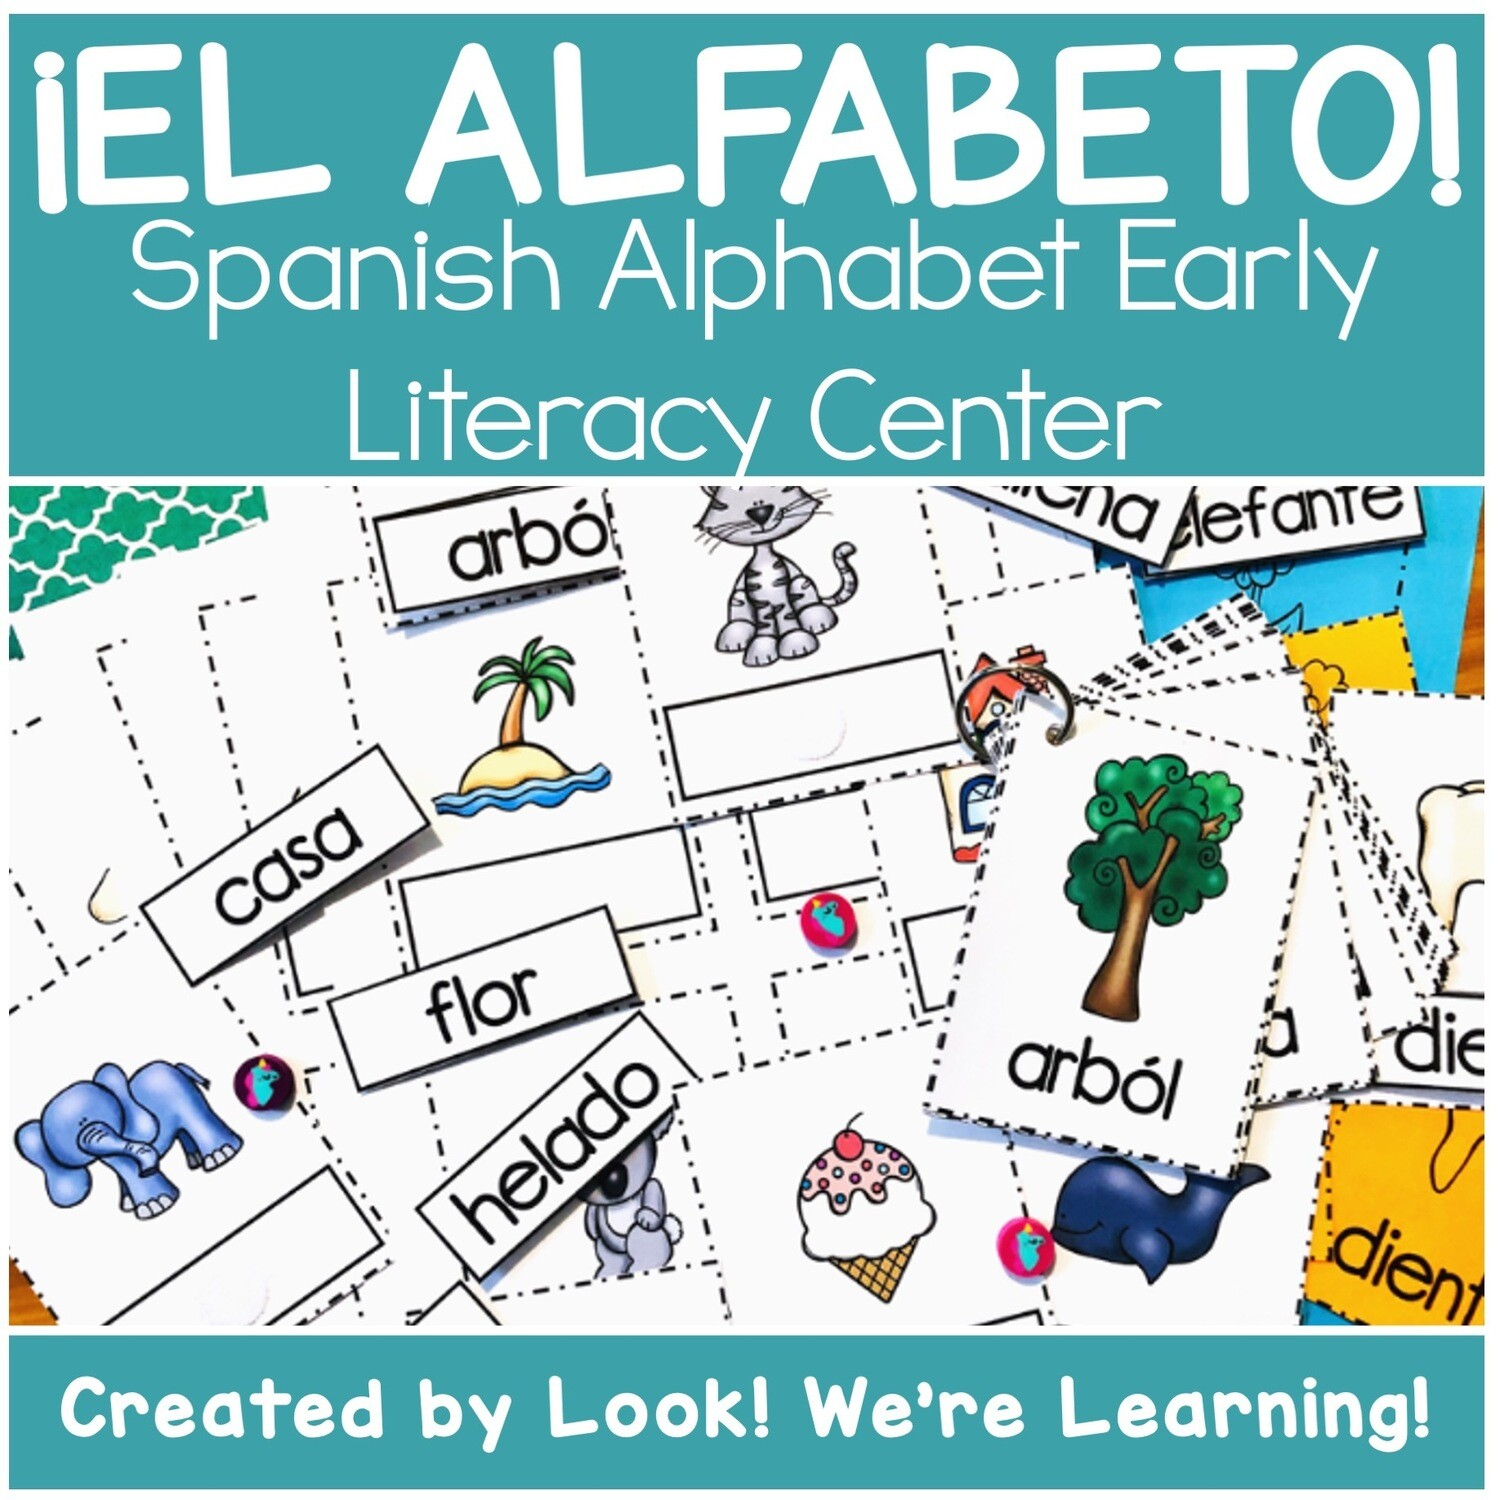 ¡El Alfabeto! Spanish Alphabet Literacy Center